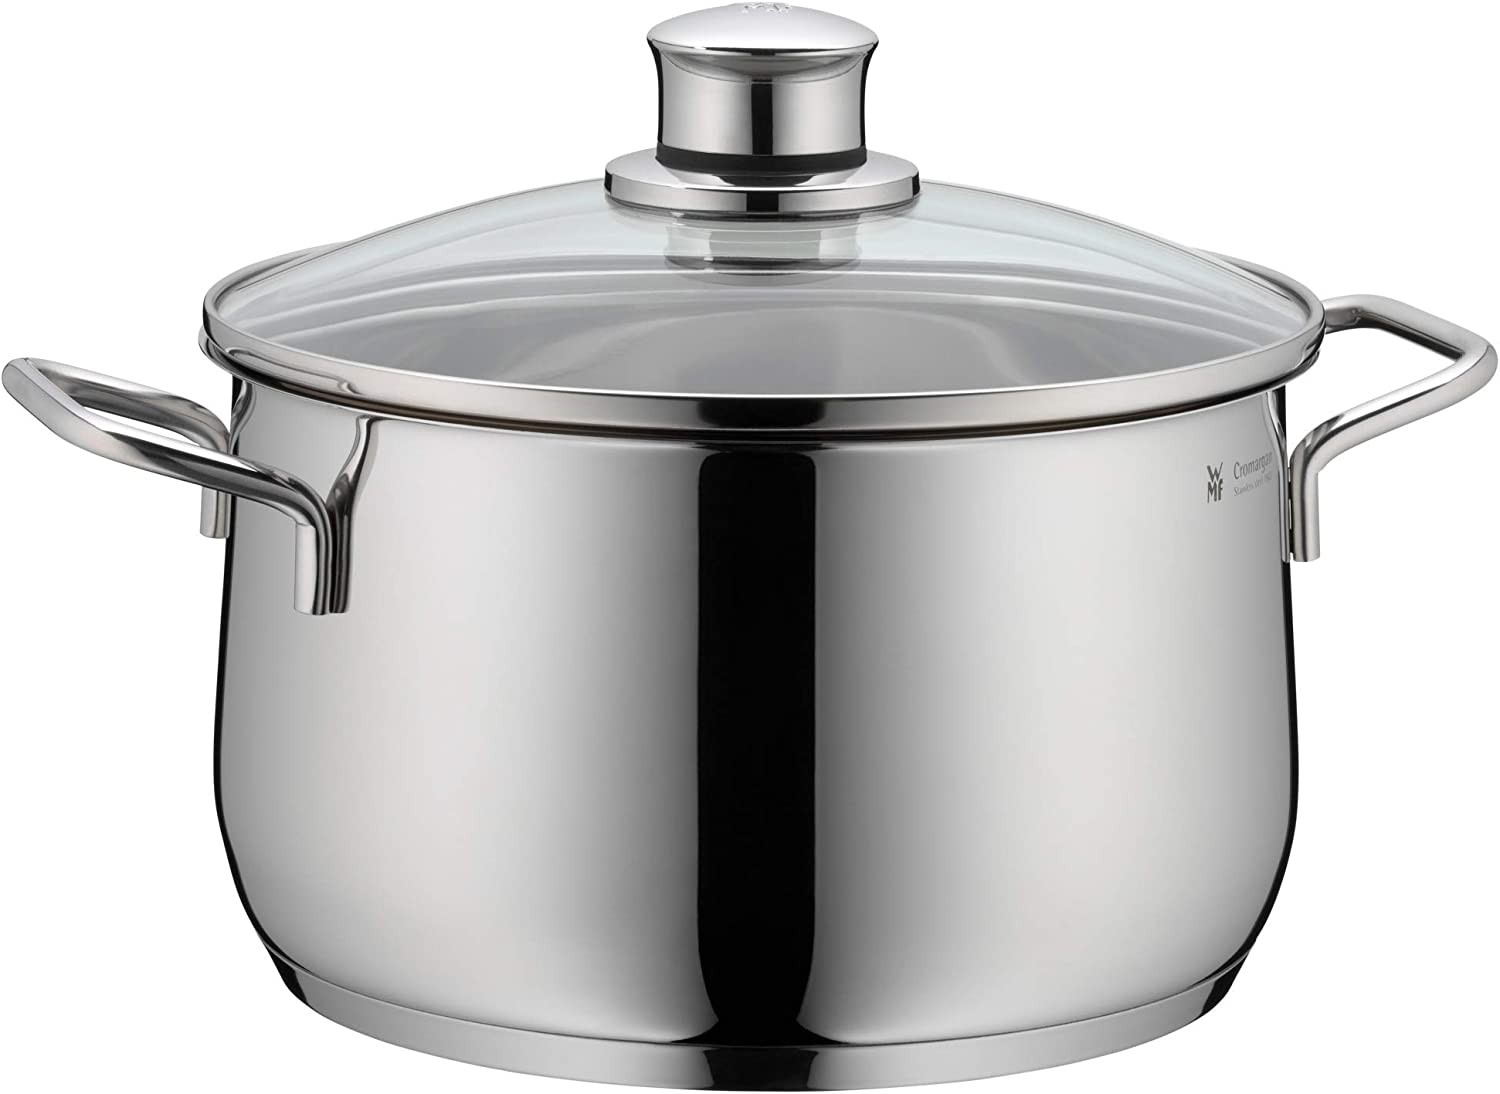 WMF stainless steel pots